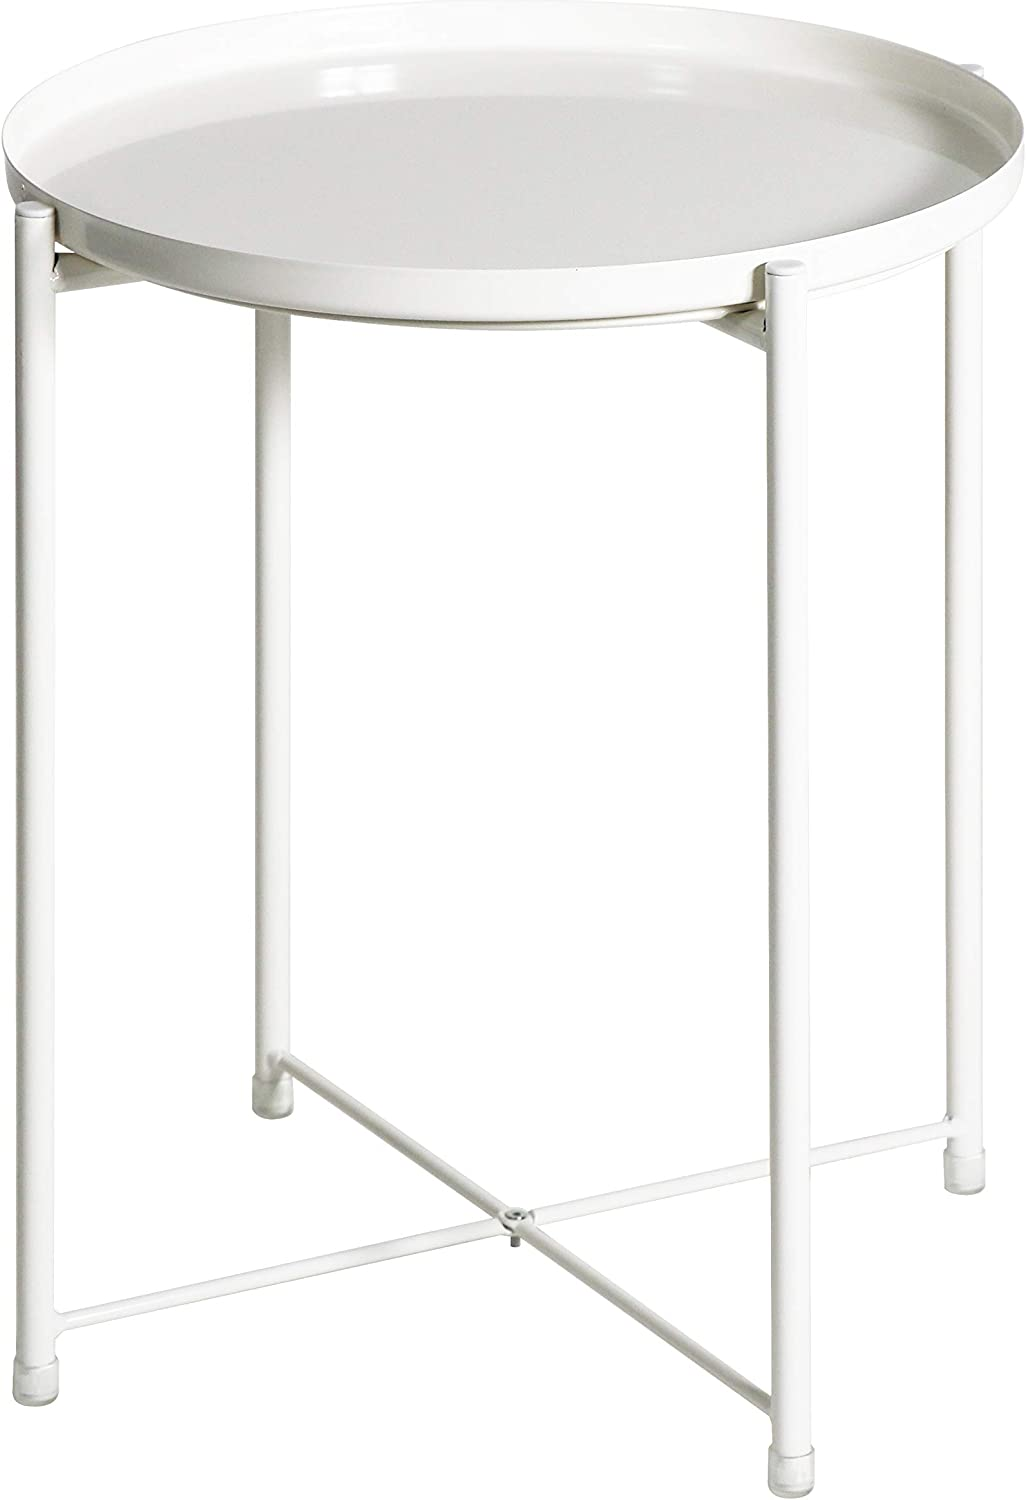 Side Table Tray Metal End Table Round Foldable Accent Coffee Table for Living Room Bedroom (Large, White)